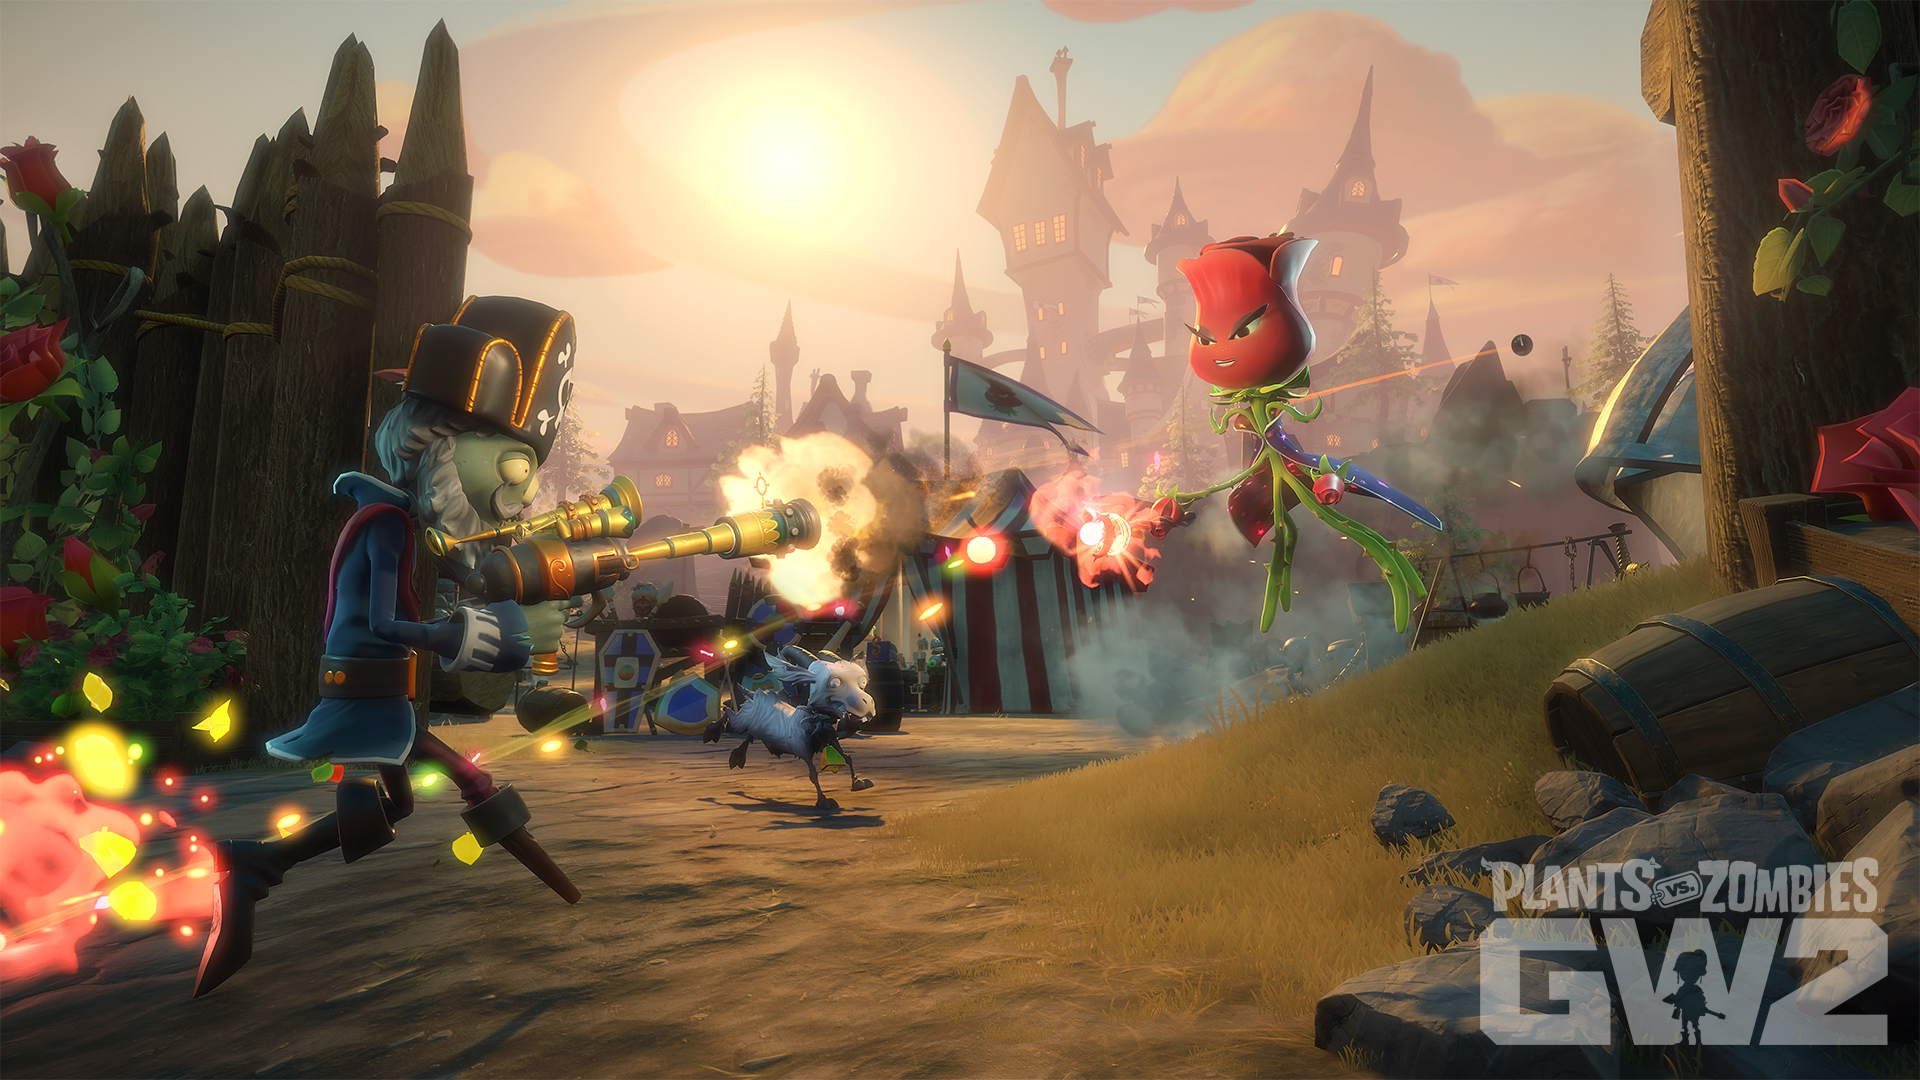 E3 2015: Plants Vs Zombies Garden Warfare 2 Announced